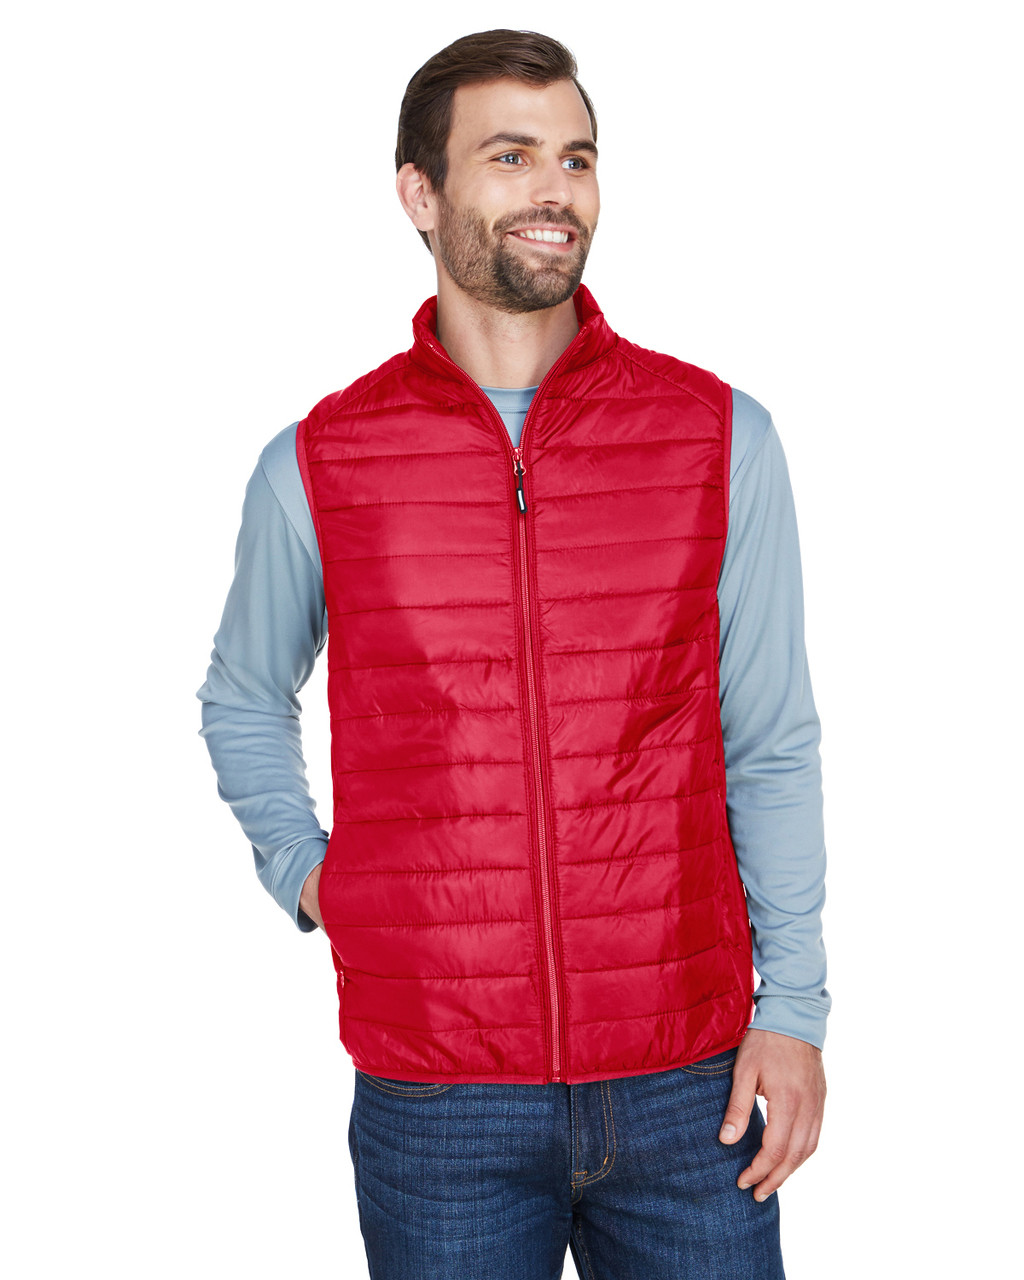 Classic Red - CE702 Ash City - Core 365 Men's Prevail Packable Puffer Vest | BlankClothing.ca